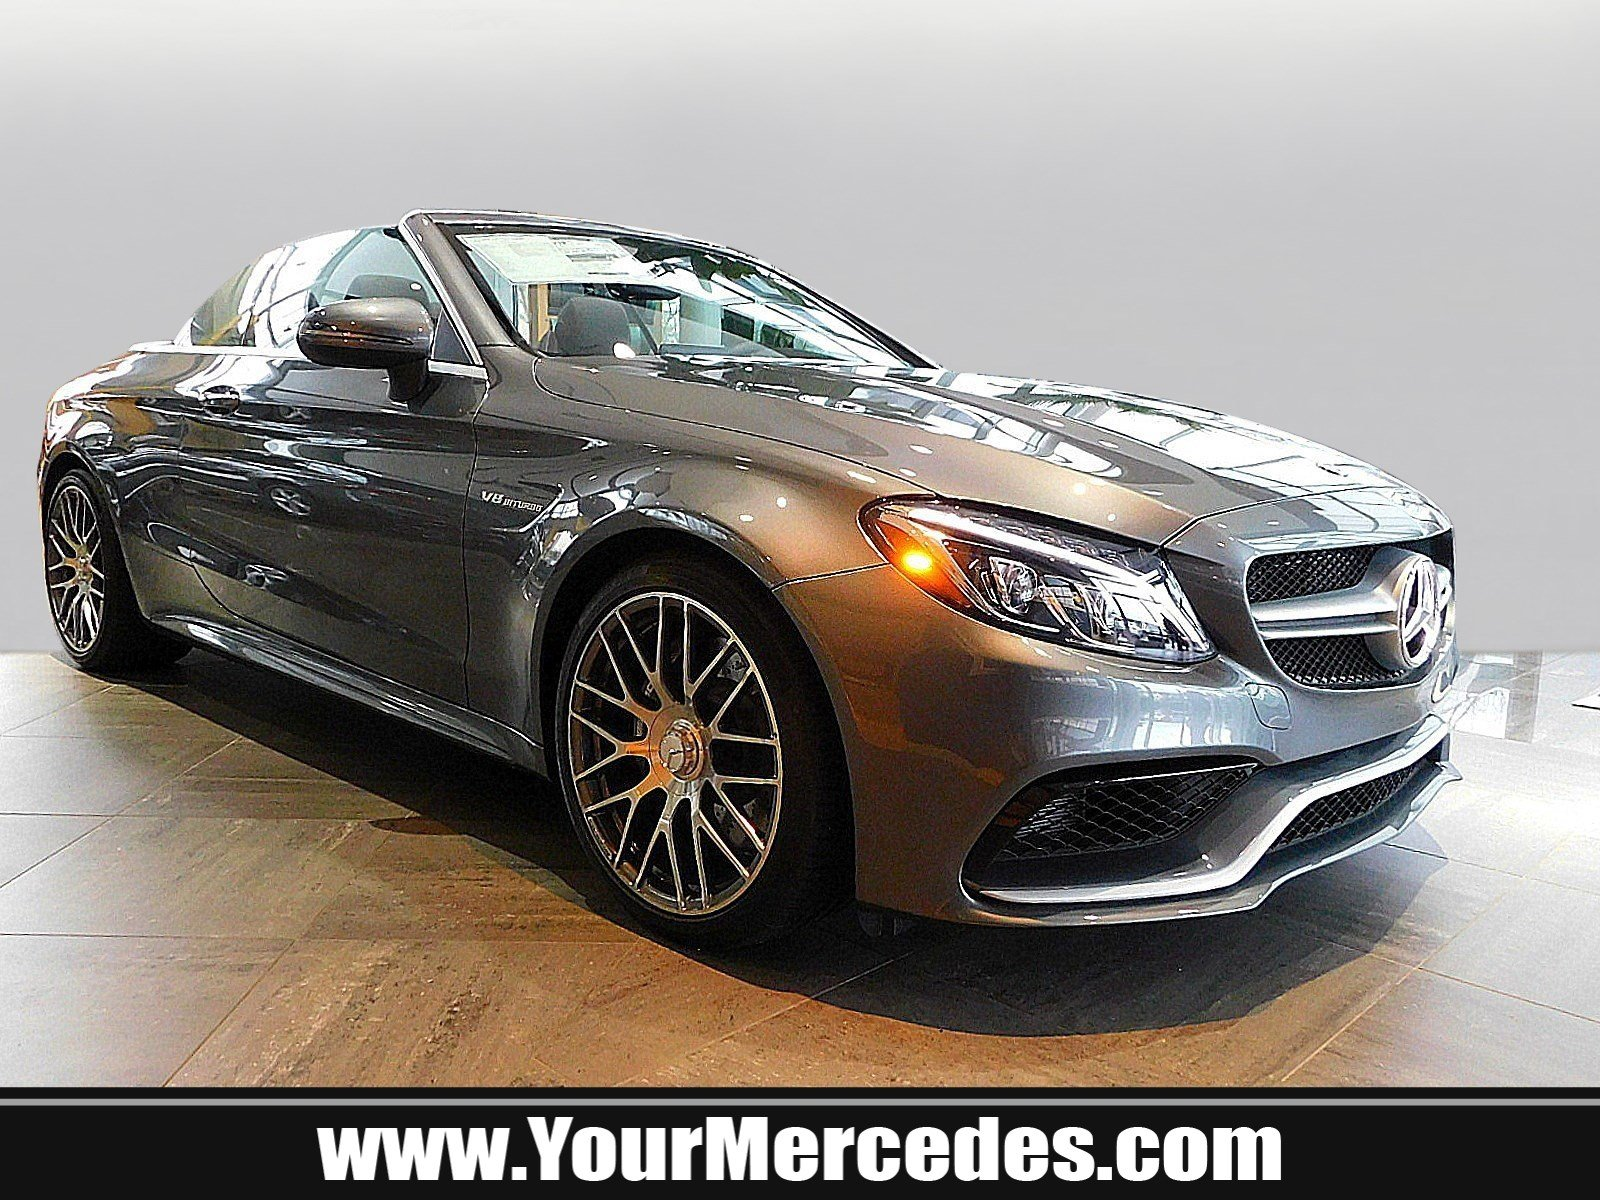 New 2018 Mercedes Benz C Class AMG C 63 Cabriolet CABRIOLET in West